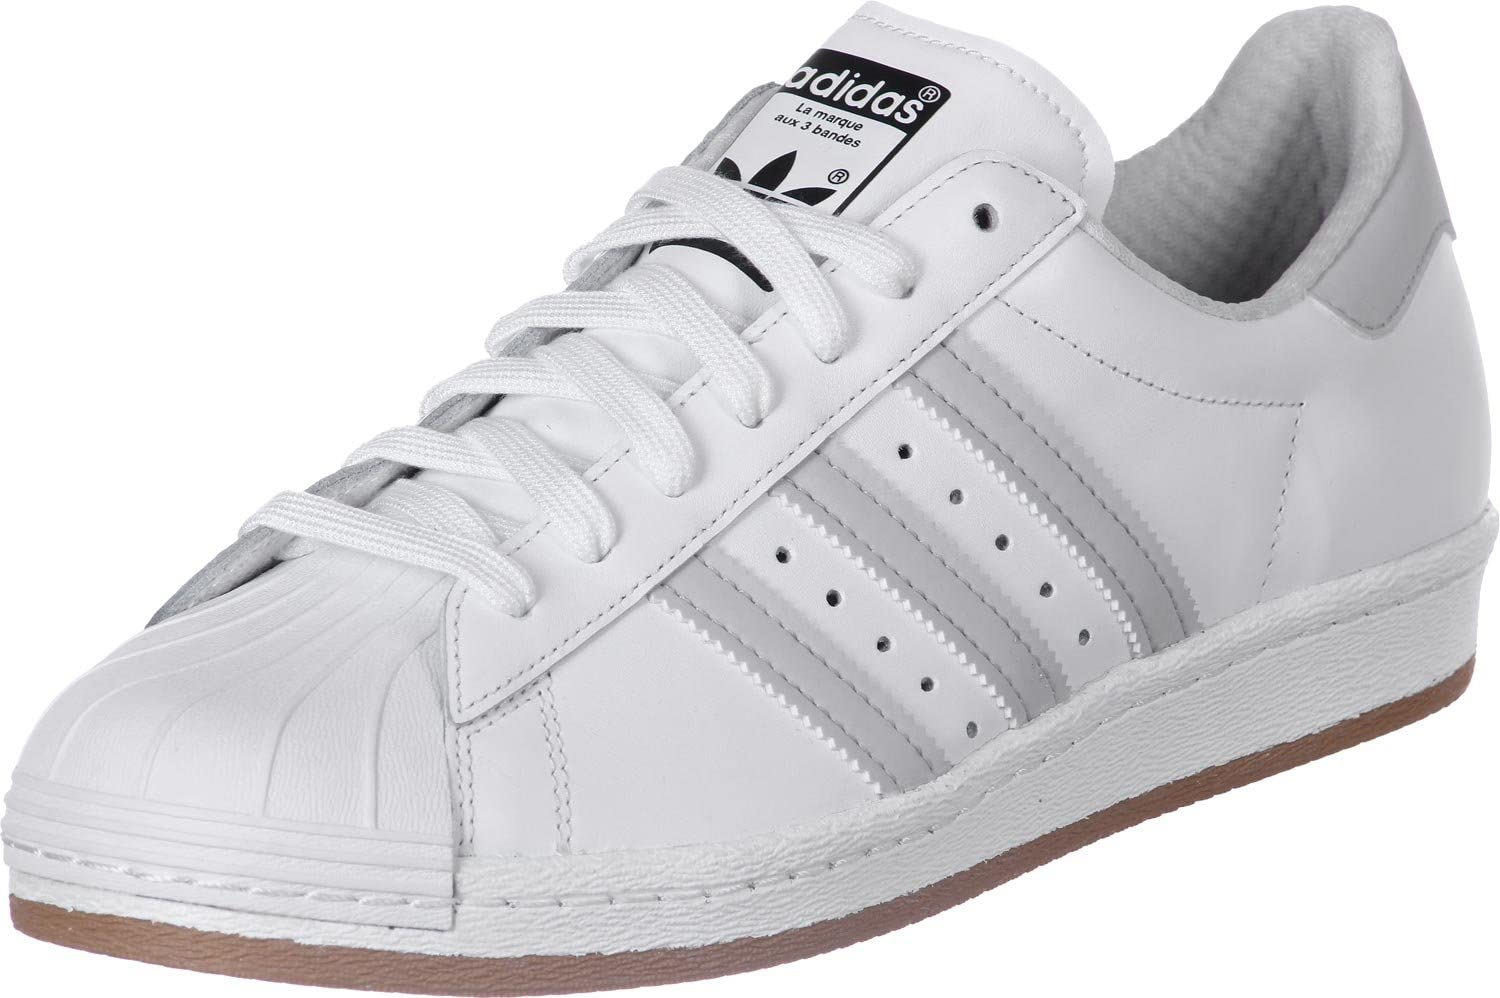 White Leather Men Sneakers Shoes